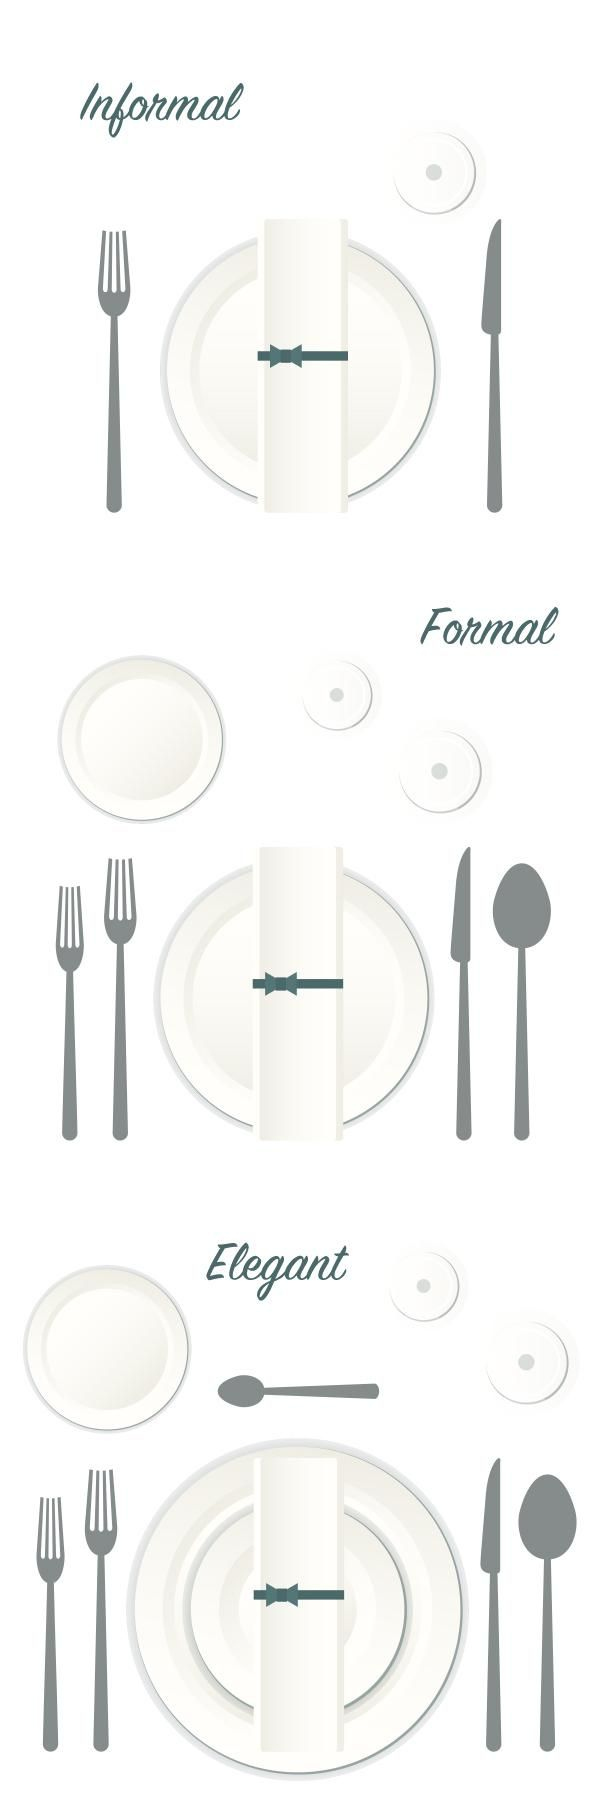 medium resolution of learn how to set the dinner table for every occasion kirkland s elegant table setting diagram